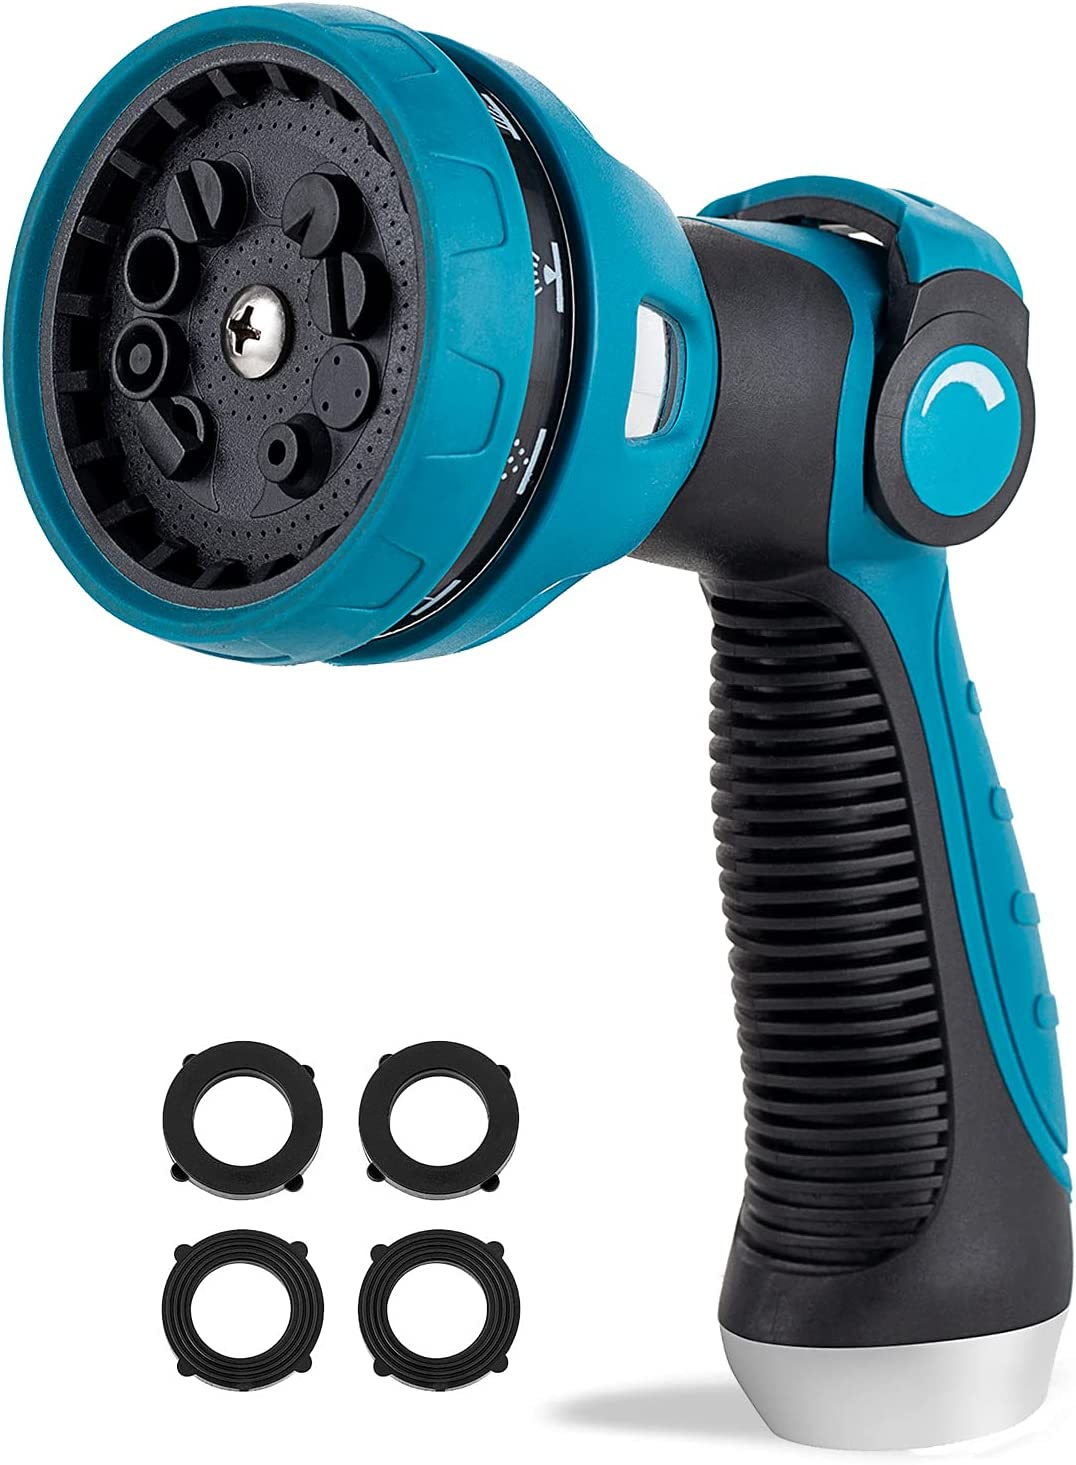 Best Value: REDESS Thumb Control Garden Hose Nozzle Sprayer